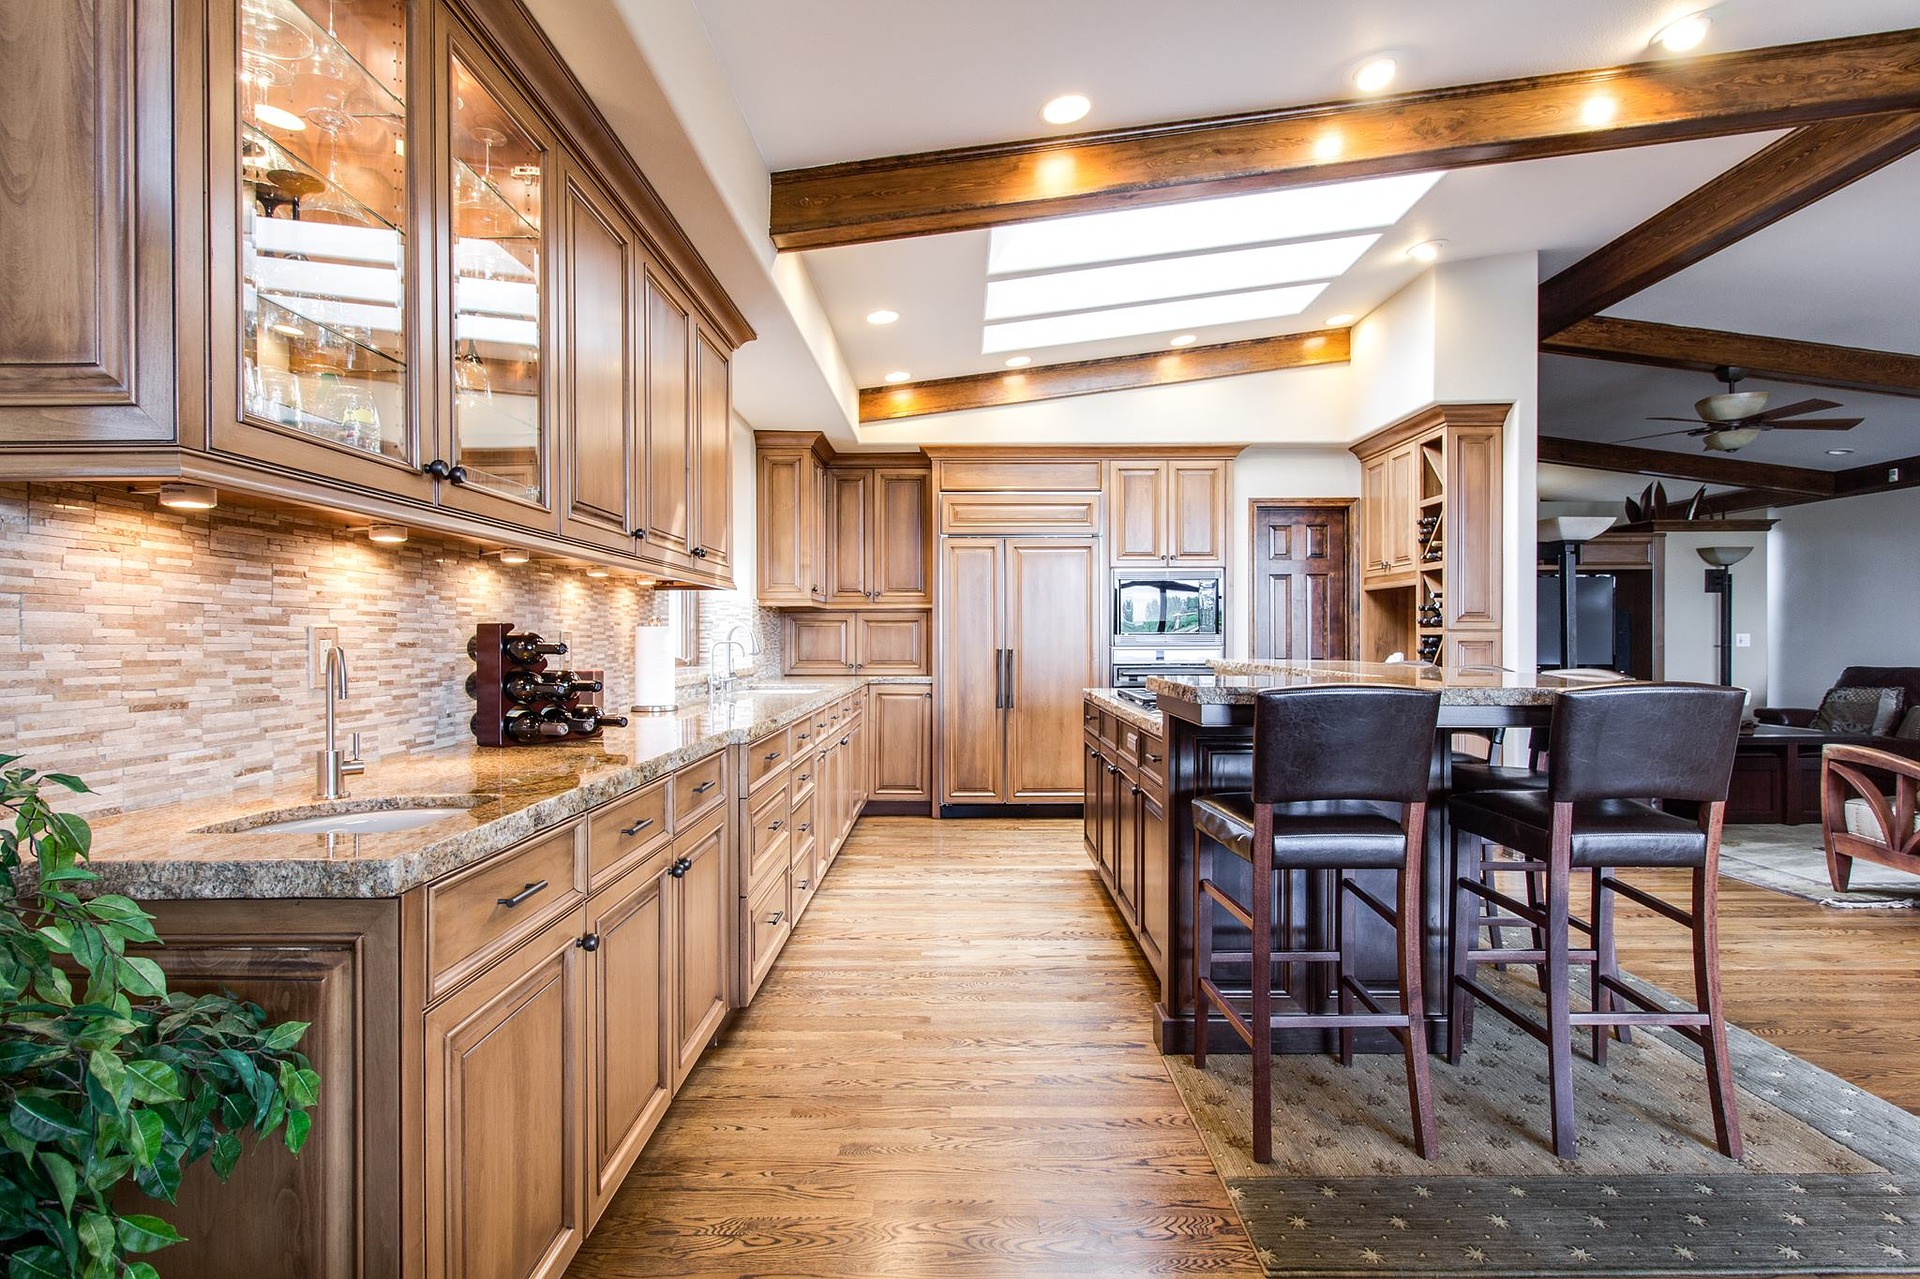 Cabinet Refacing NJ - Cabinet Refinishing New Jersey